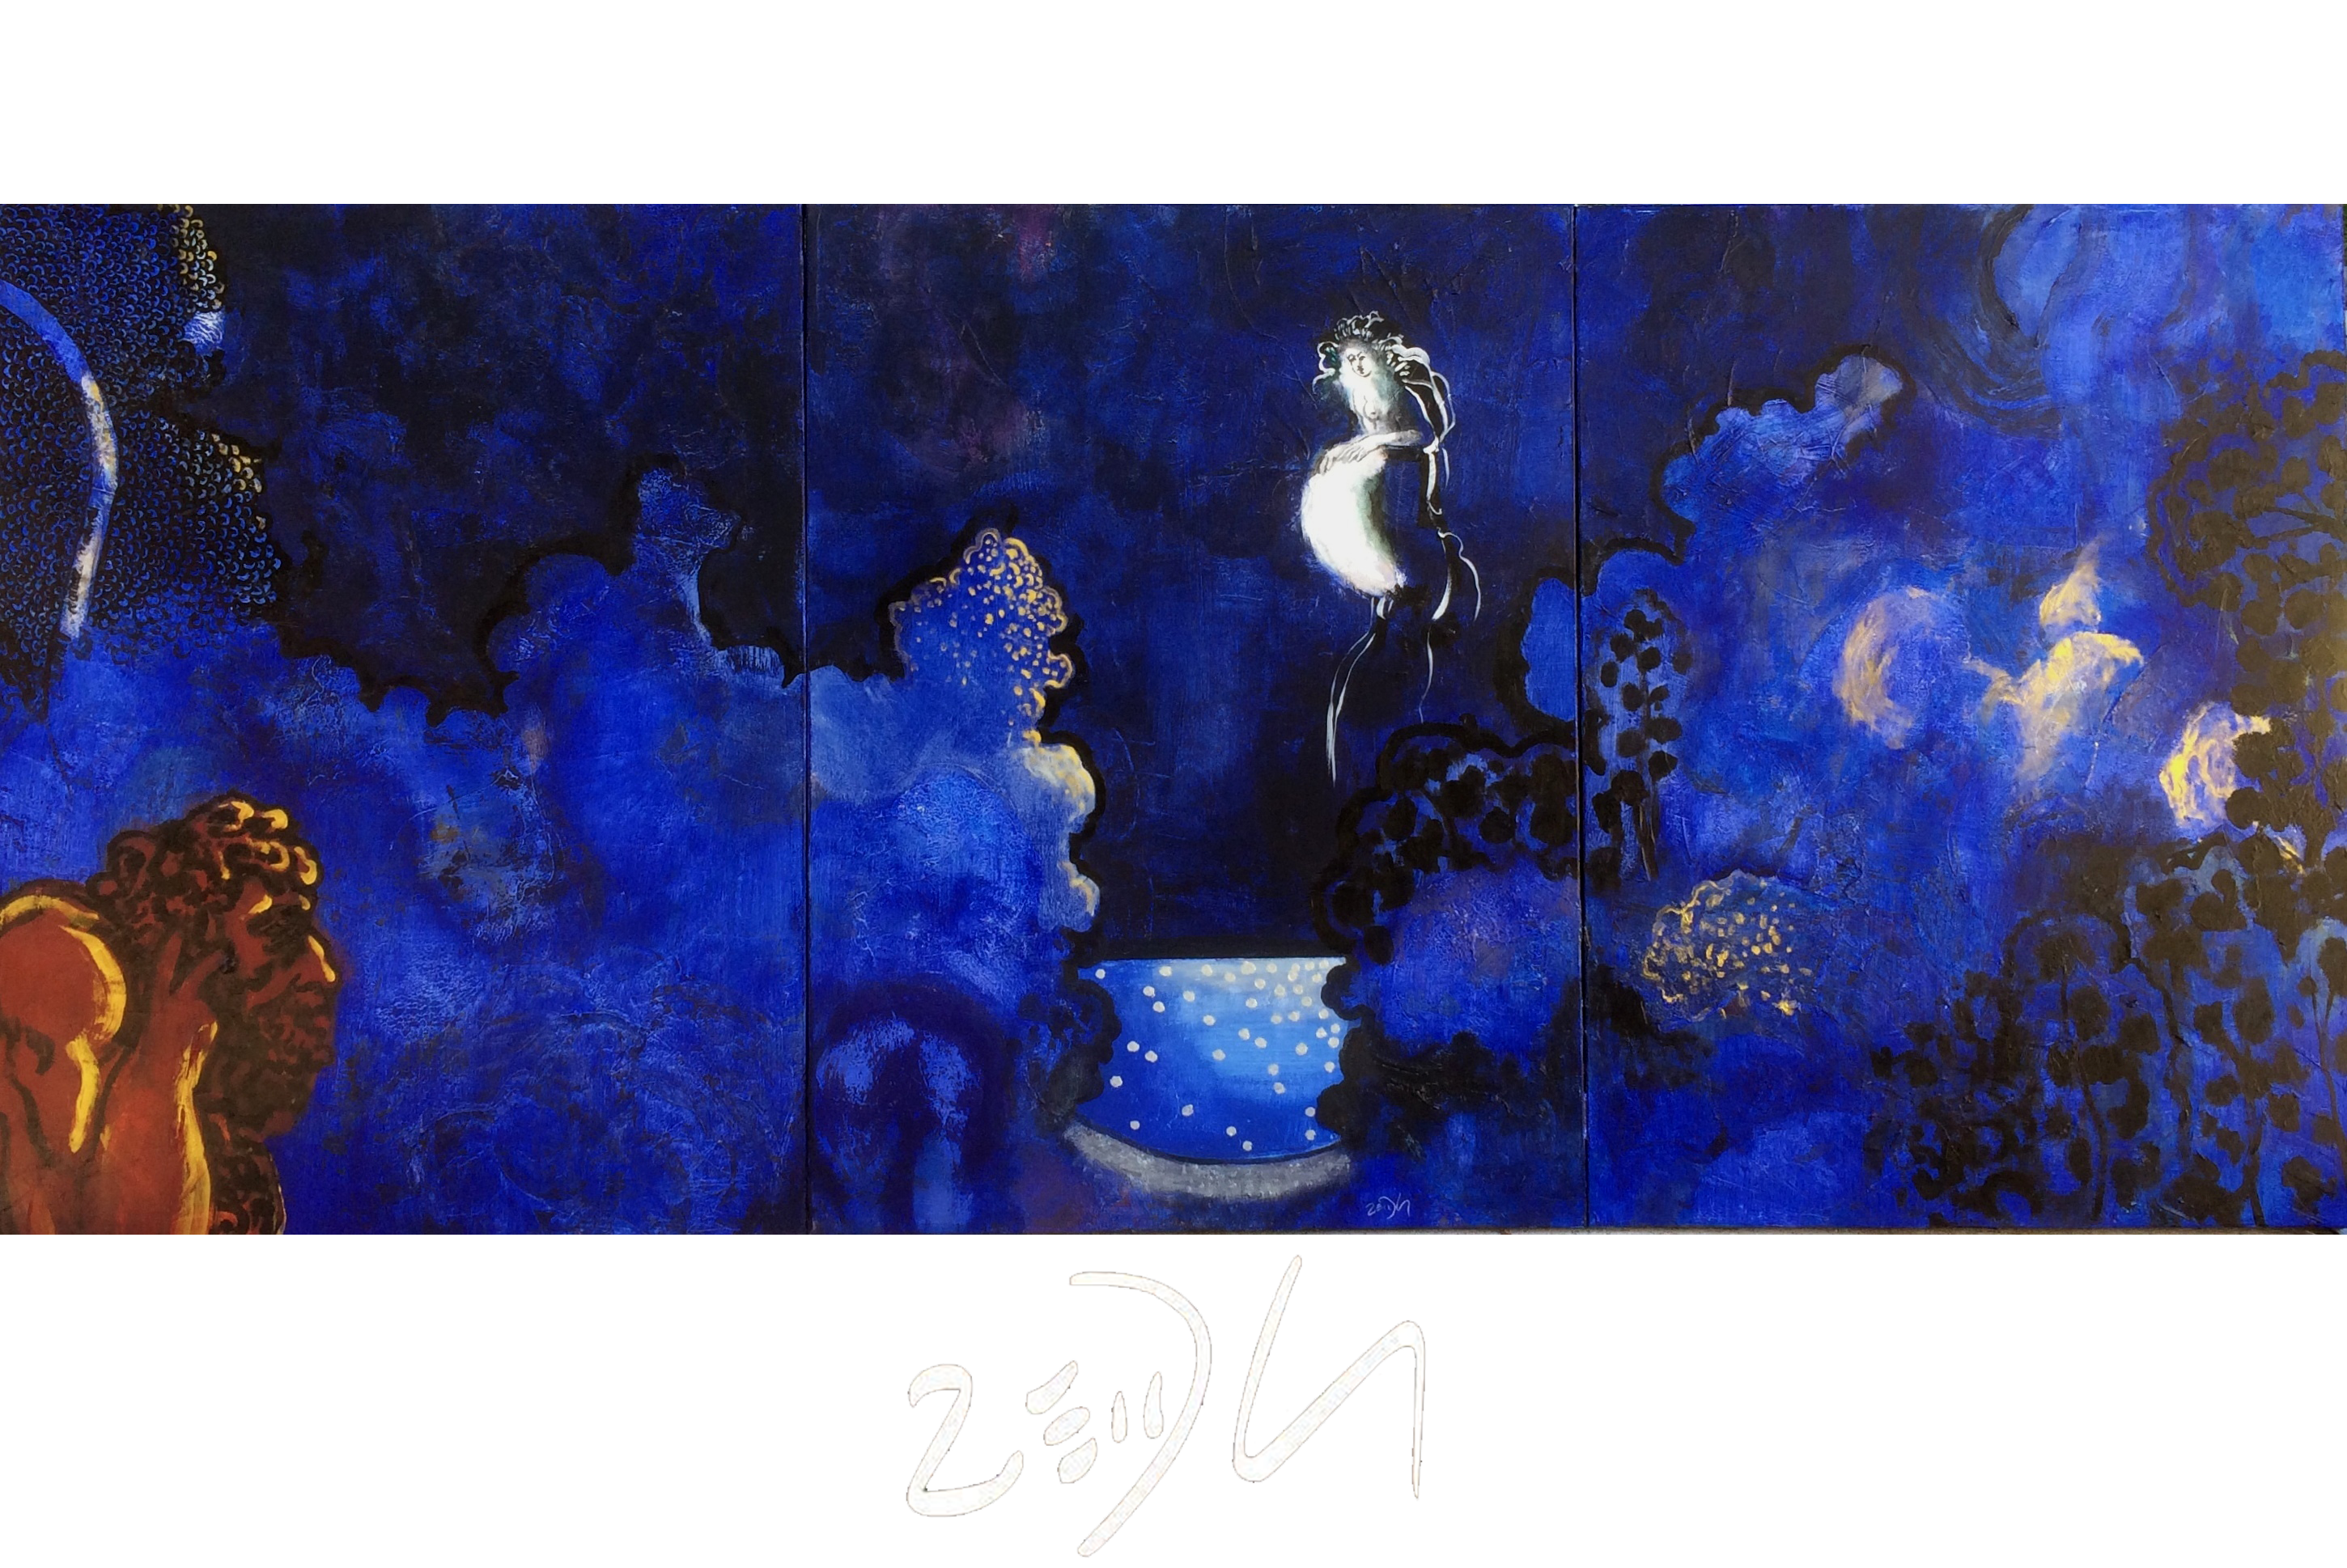 The pregnant moon – La lune enceinte - Acrylic on canvas, - acrylique sur toile - 48 x 108 (122 x 273 cm)